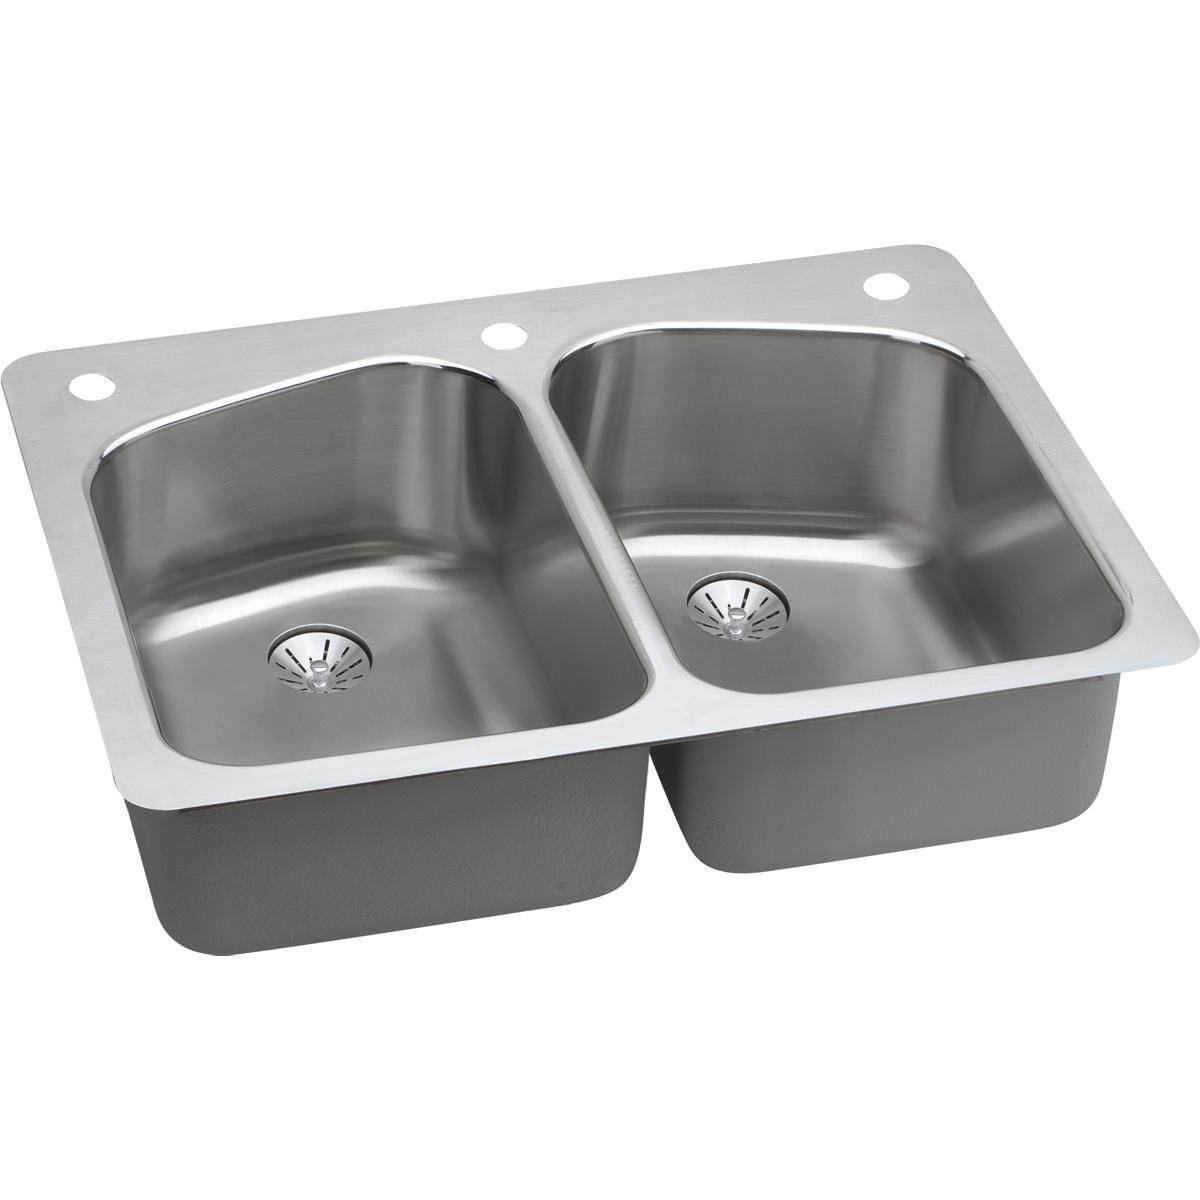 Elkay Lustertone LKHSR33229PD0 Equal Double Bowl Dual Mount Stainless Steel Sink with Perfect Drain